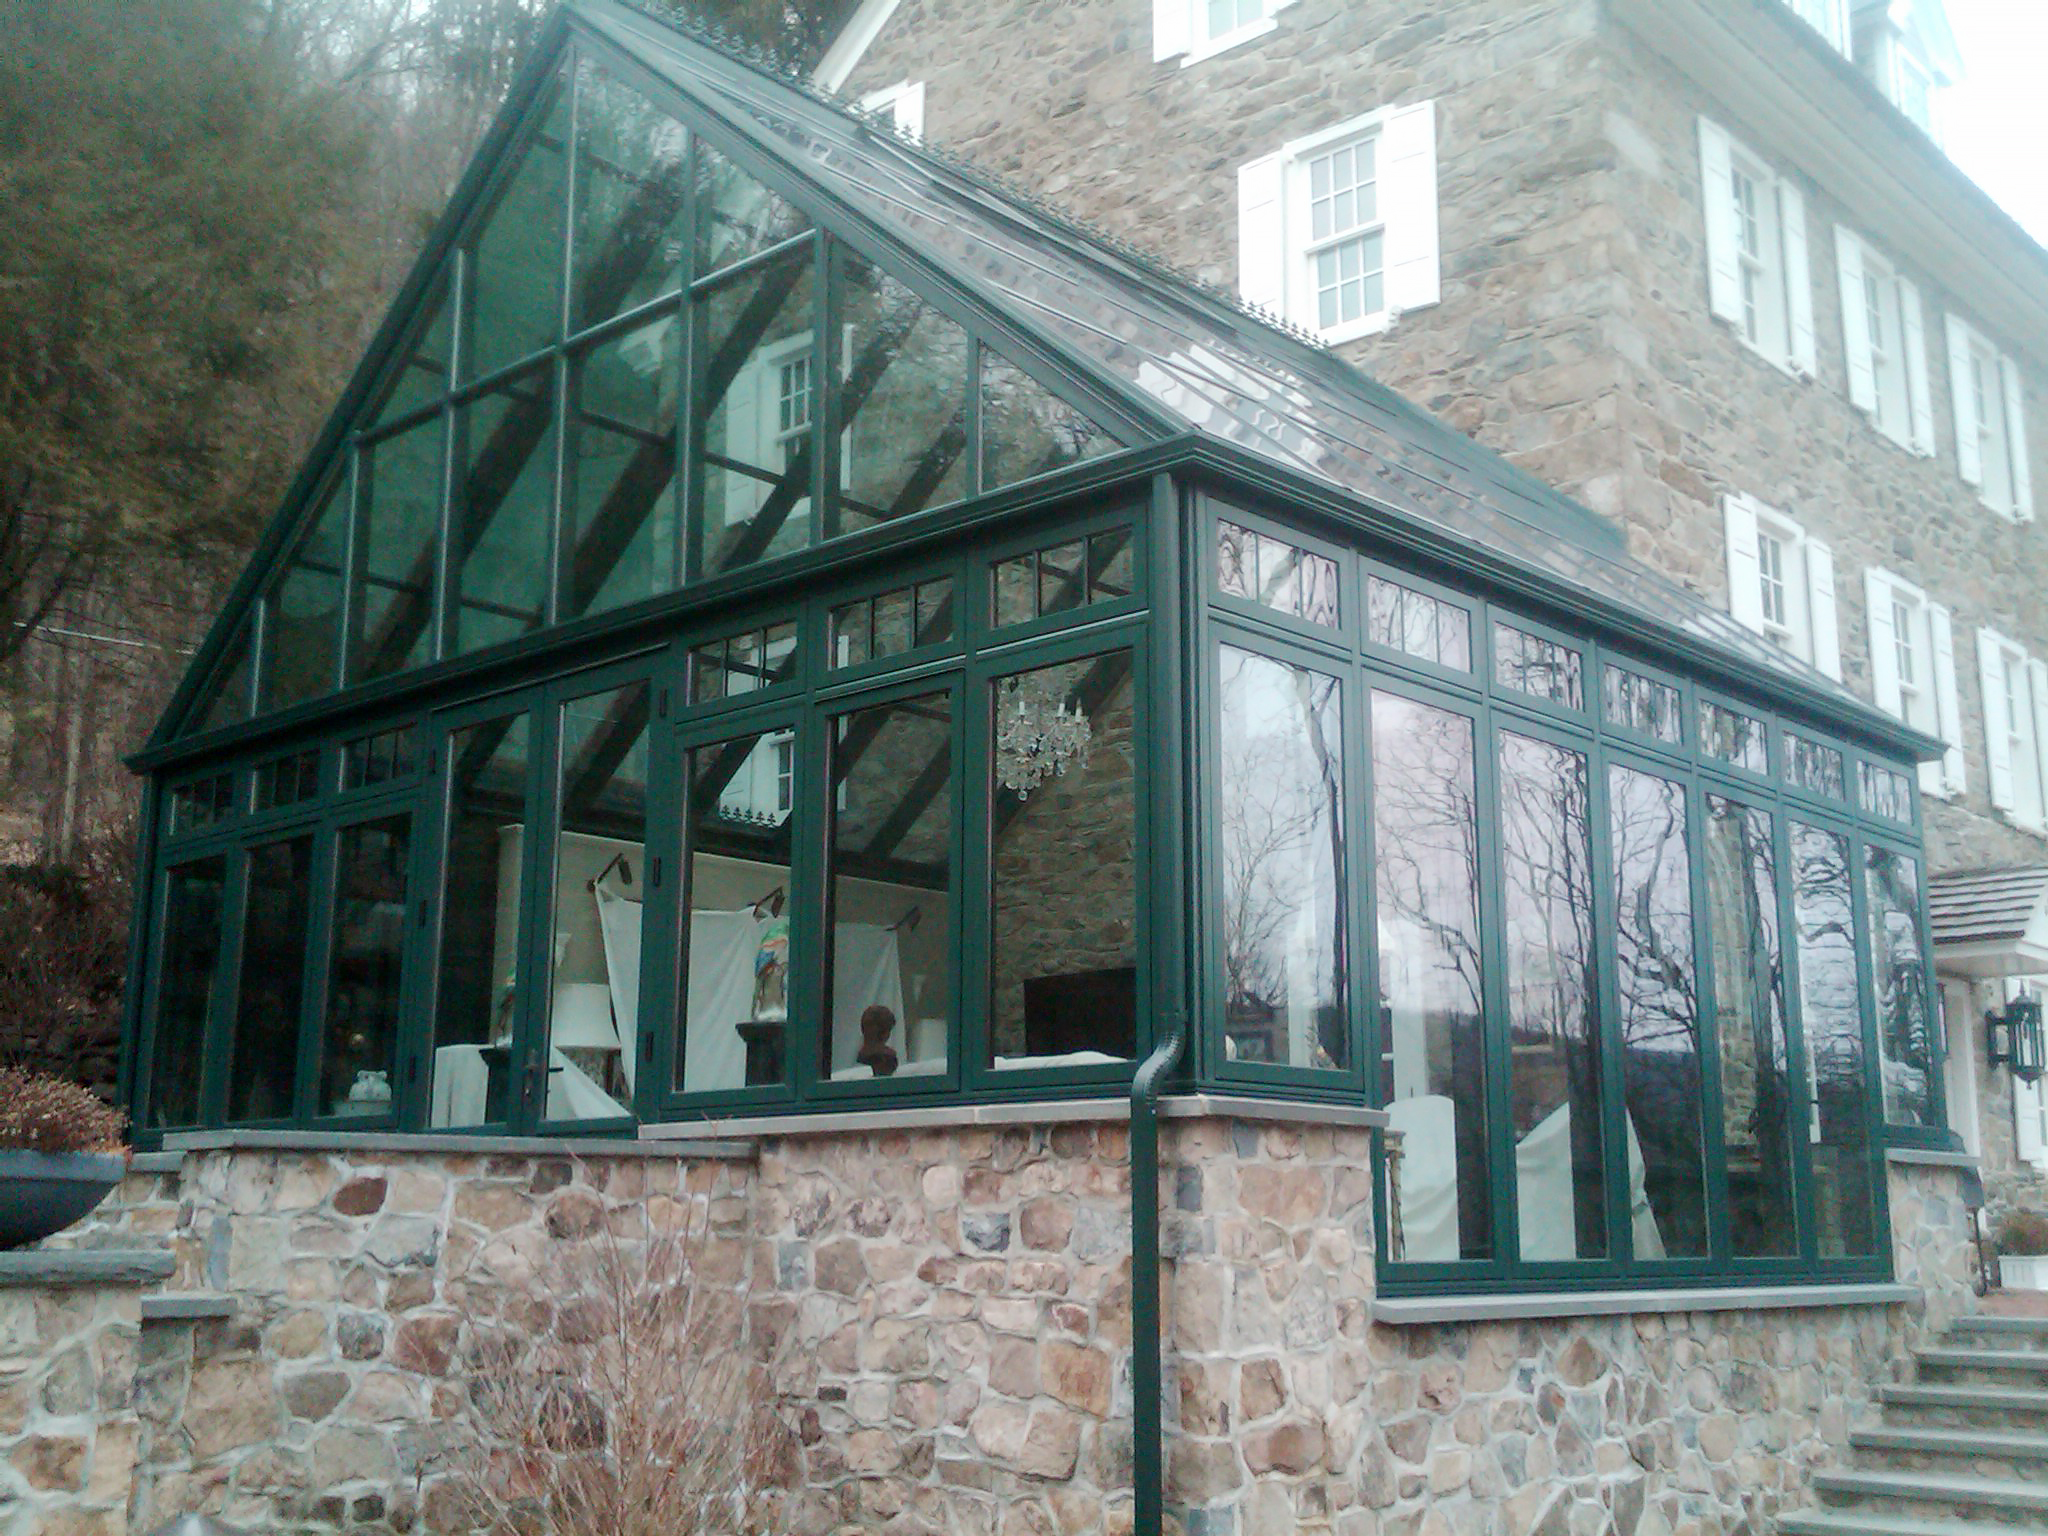 Straight eave double pitch replacement conservatory. Structure was built to replace an older model by another manufacturer. The conservatory has an attached entryway. Decorative accessories include fixed window frames, base panels on the terrace doors, finials, crown molding, transoms, interior ogee and bull nose capping, transoms and SDL's